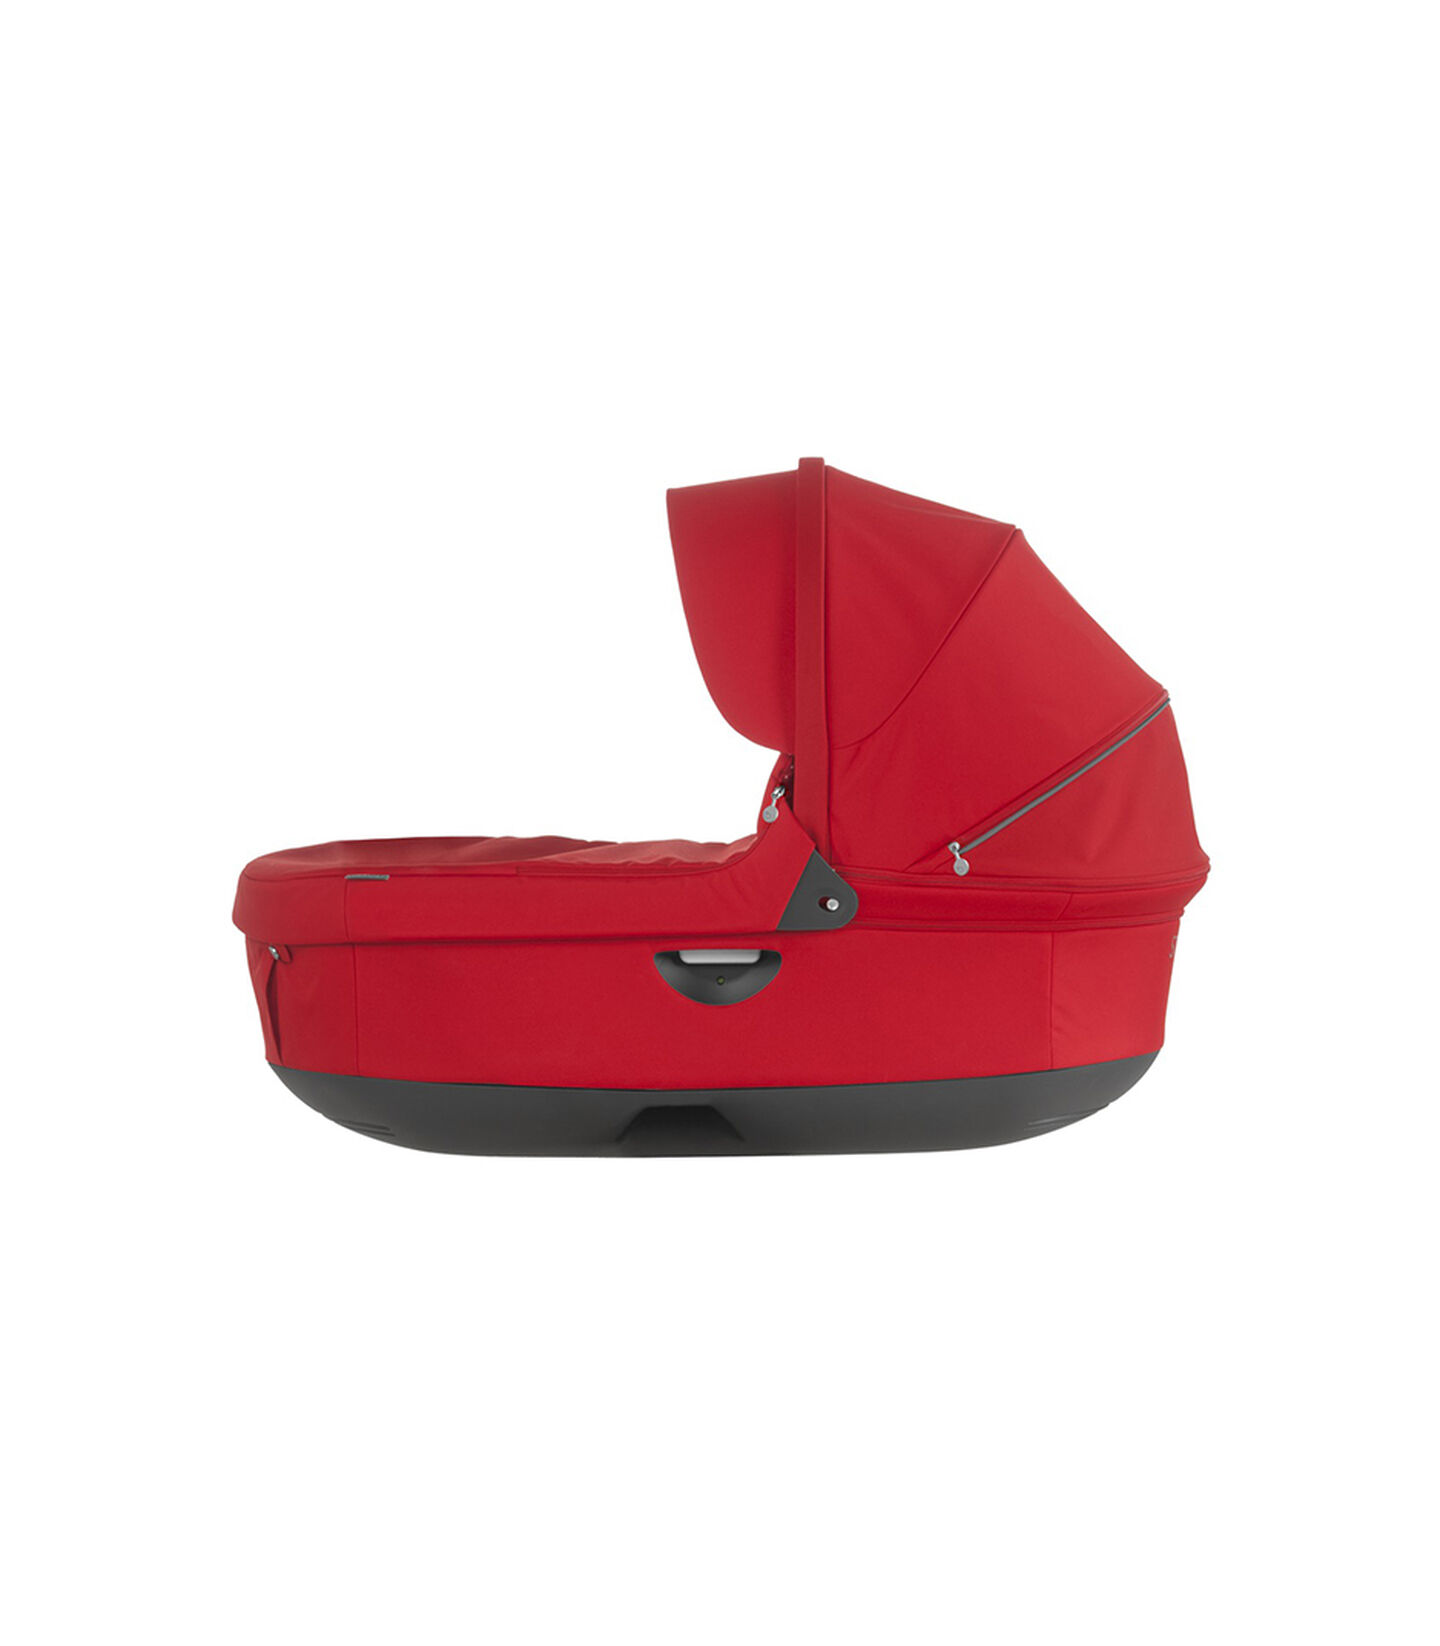 Stokke® Stroller Carry Cot. Red. (Canopy not included).